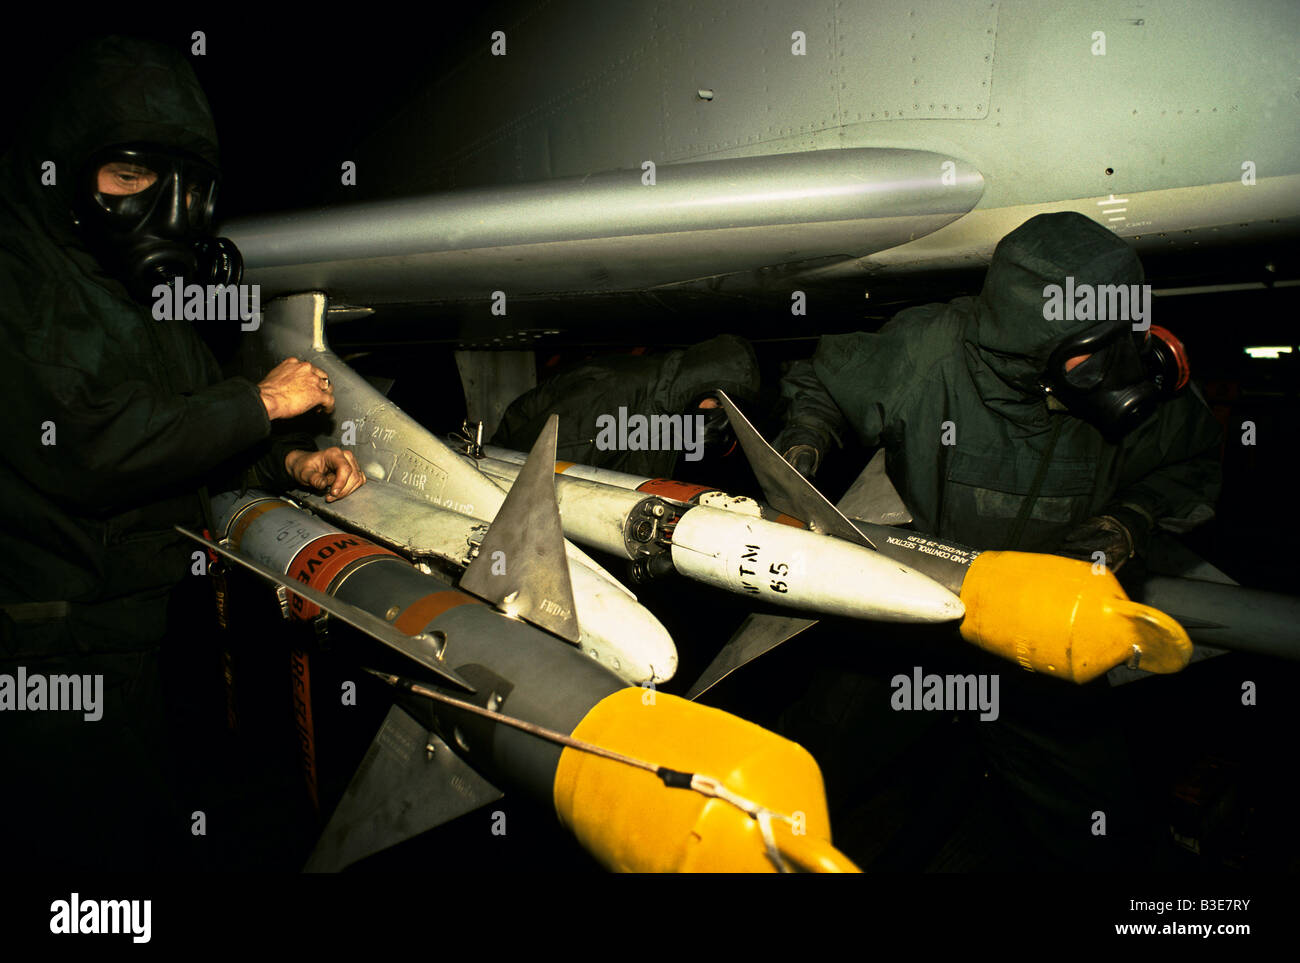 GROUND CREW WEARING GAS MASK NBC NUCLEAR BIOLOGICAL CHEMICAL PROTECTIVE SUITS LOADING MISSILES ONTO PHANTOM JET - Stock Image